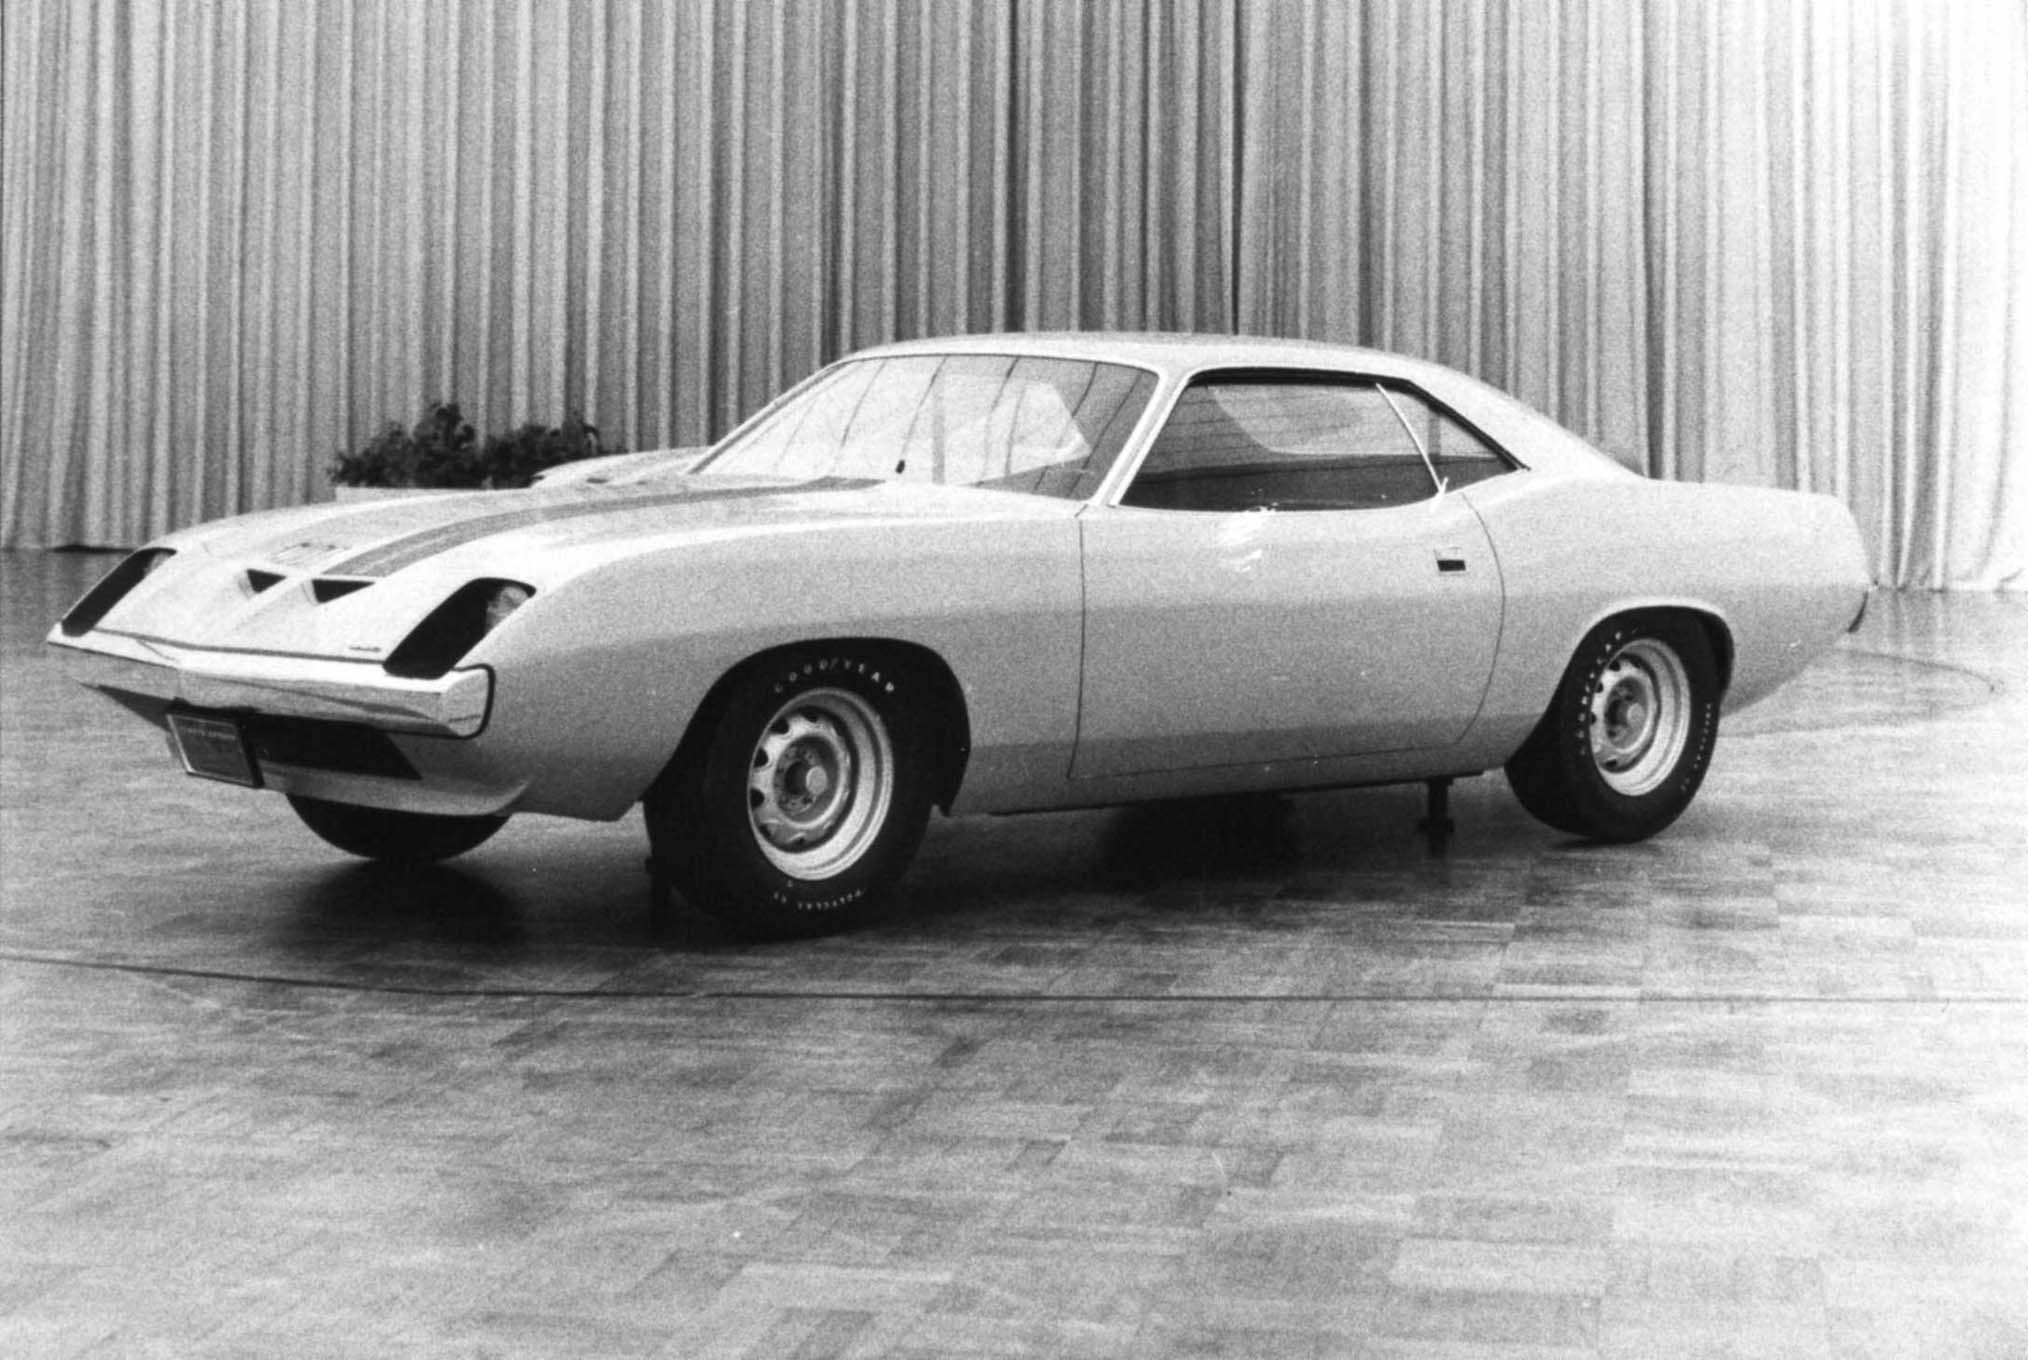 Here's the post-Cincinnati nose job. This photo was taken October 30, 1969, a few weeks after the disastrous showing in Cincinnati. Don Hood's aerodynamic front end has been grafted onto a 1974 Barracuda and the basic body would have been carried over. Note the chin spoiler and the overall resemblance to Ford's 1970 King Cobra Torino. This proposal was also rejected.